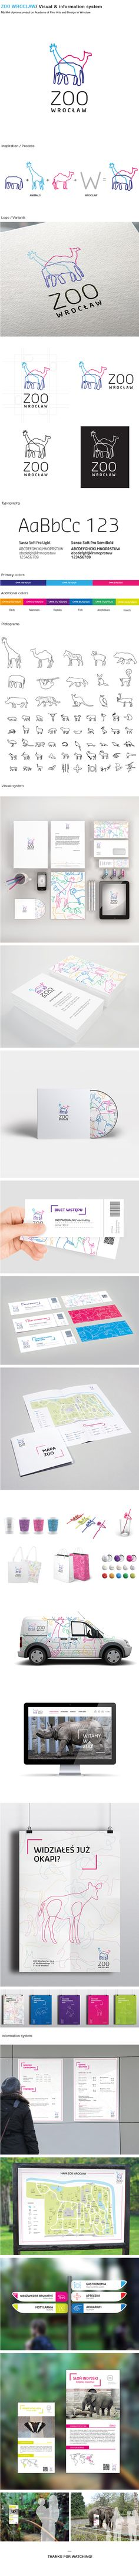 ZOO WROCLAW © on Behance by Agata Szota. Long pin by great packaging and brandi… – Ayesha ZOO WROCLAW © on Behance by Agata Szota. Long pin by great packaging and brandi… ZOO WROCLAW © on Behance by Agata Szota. Long pin by great packaging and branding PD Brand Identity Design, Graphic Design Branding, Corporate Design, Graphic Design Illustration, Packaging Design, Corporate Identity, Logo Branding, Web Design, Visual Design